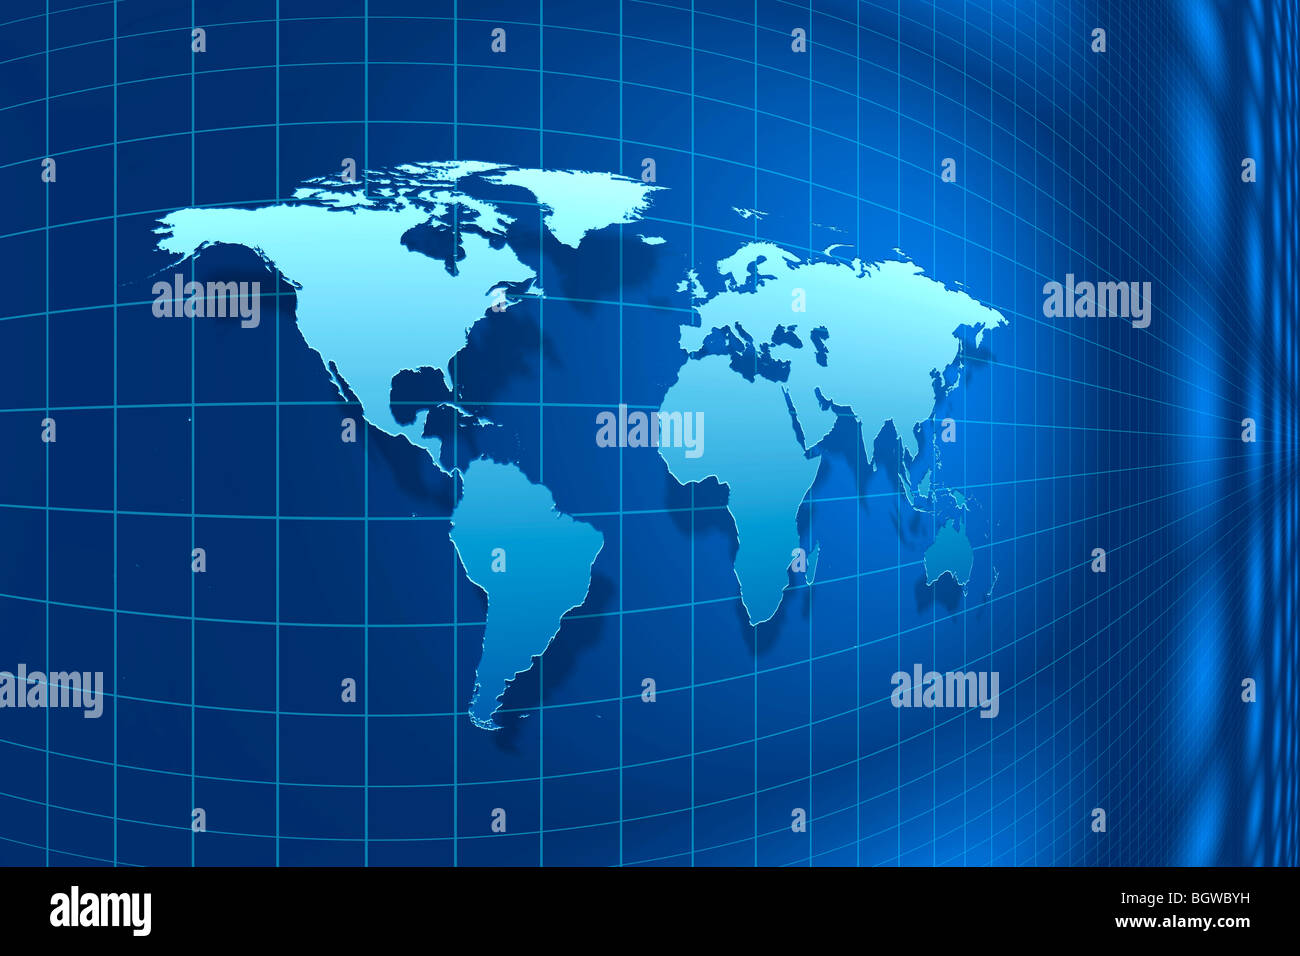 Perspective view of a light blue world map against a dark blue Stock Photo R